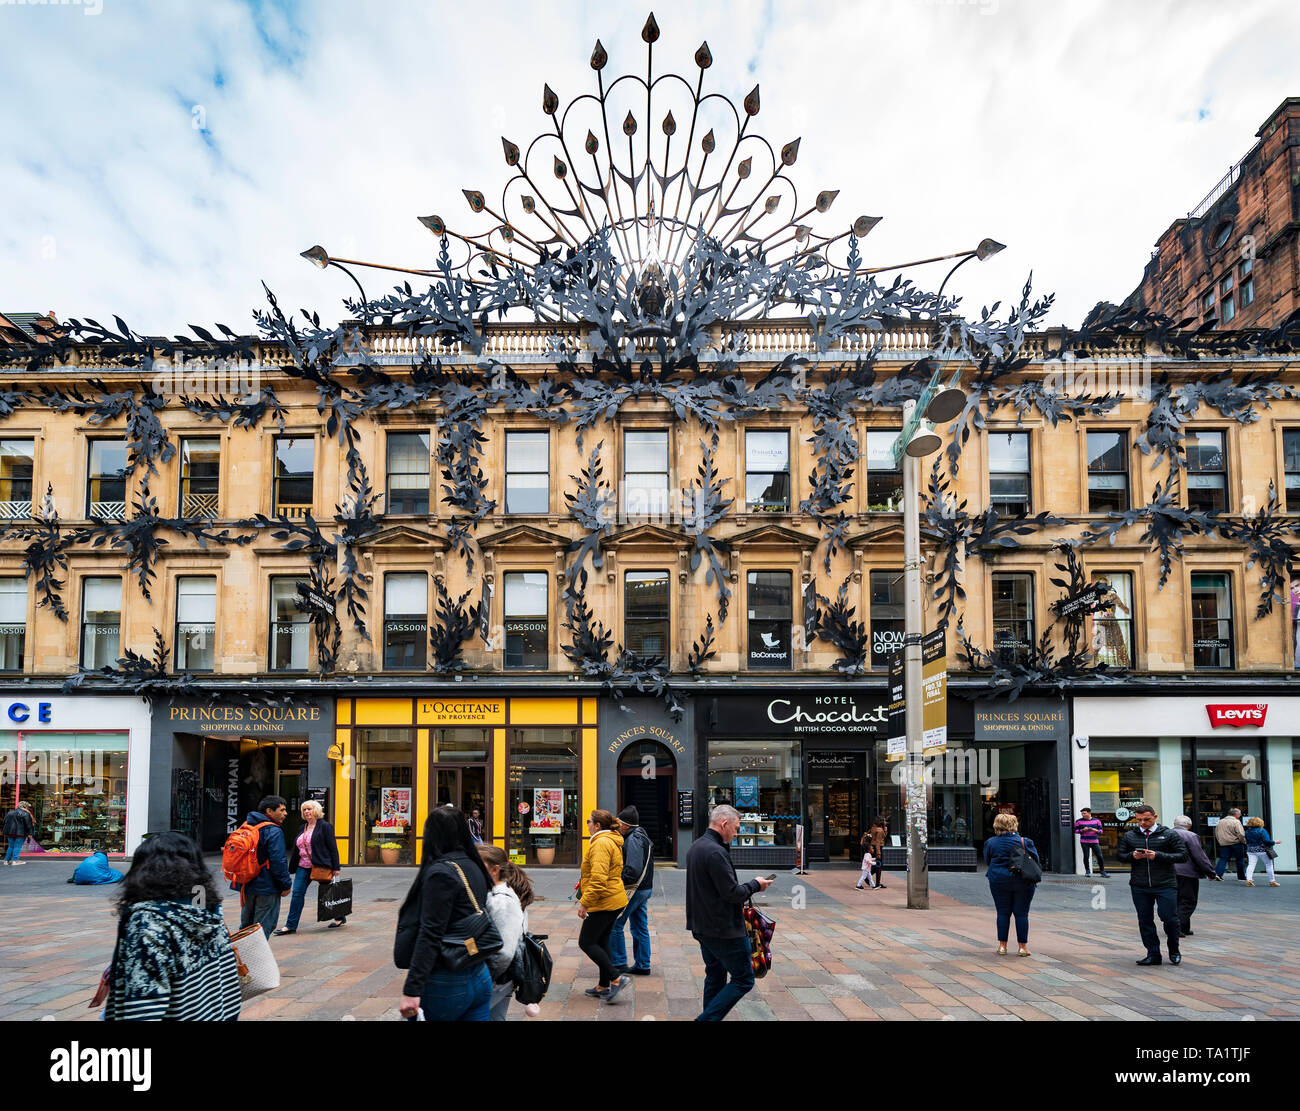 View of shoppers and shops at Princes Square shopping centre on Buchanan Street the main pedestrian shopping street in Glasgow, Scotland, UK - Stock Image